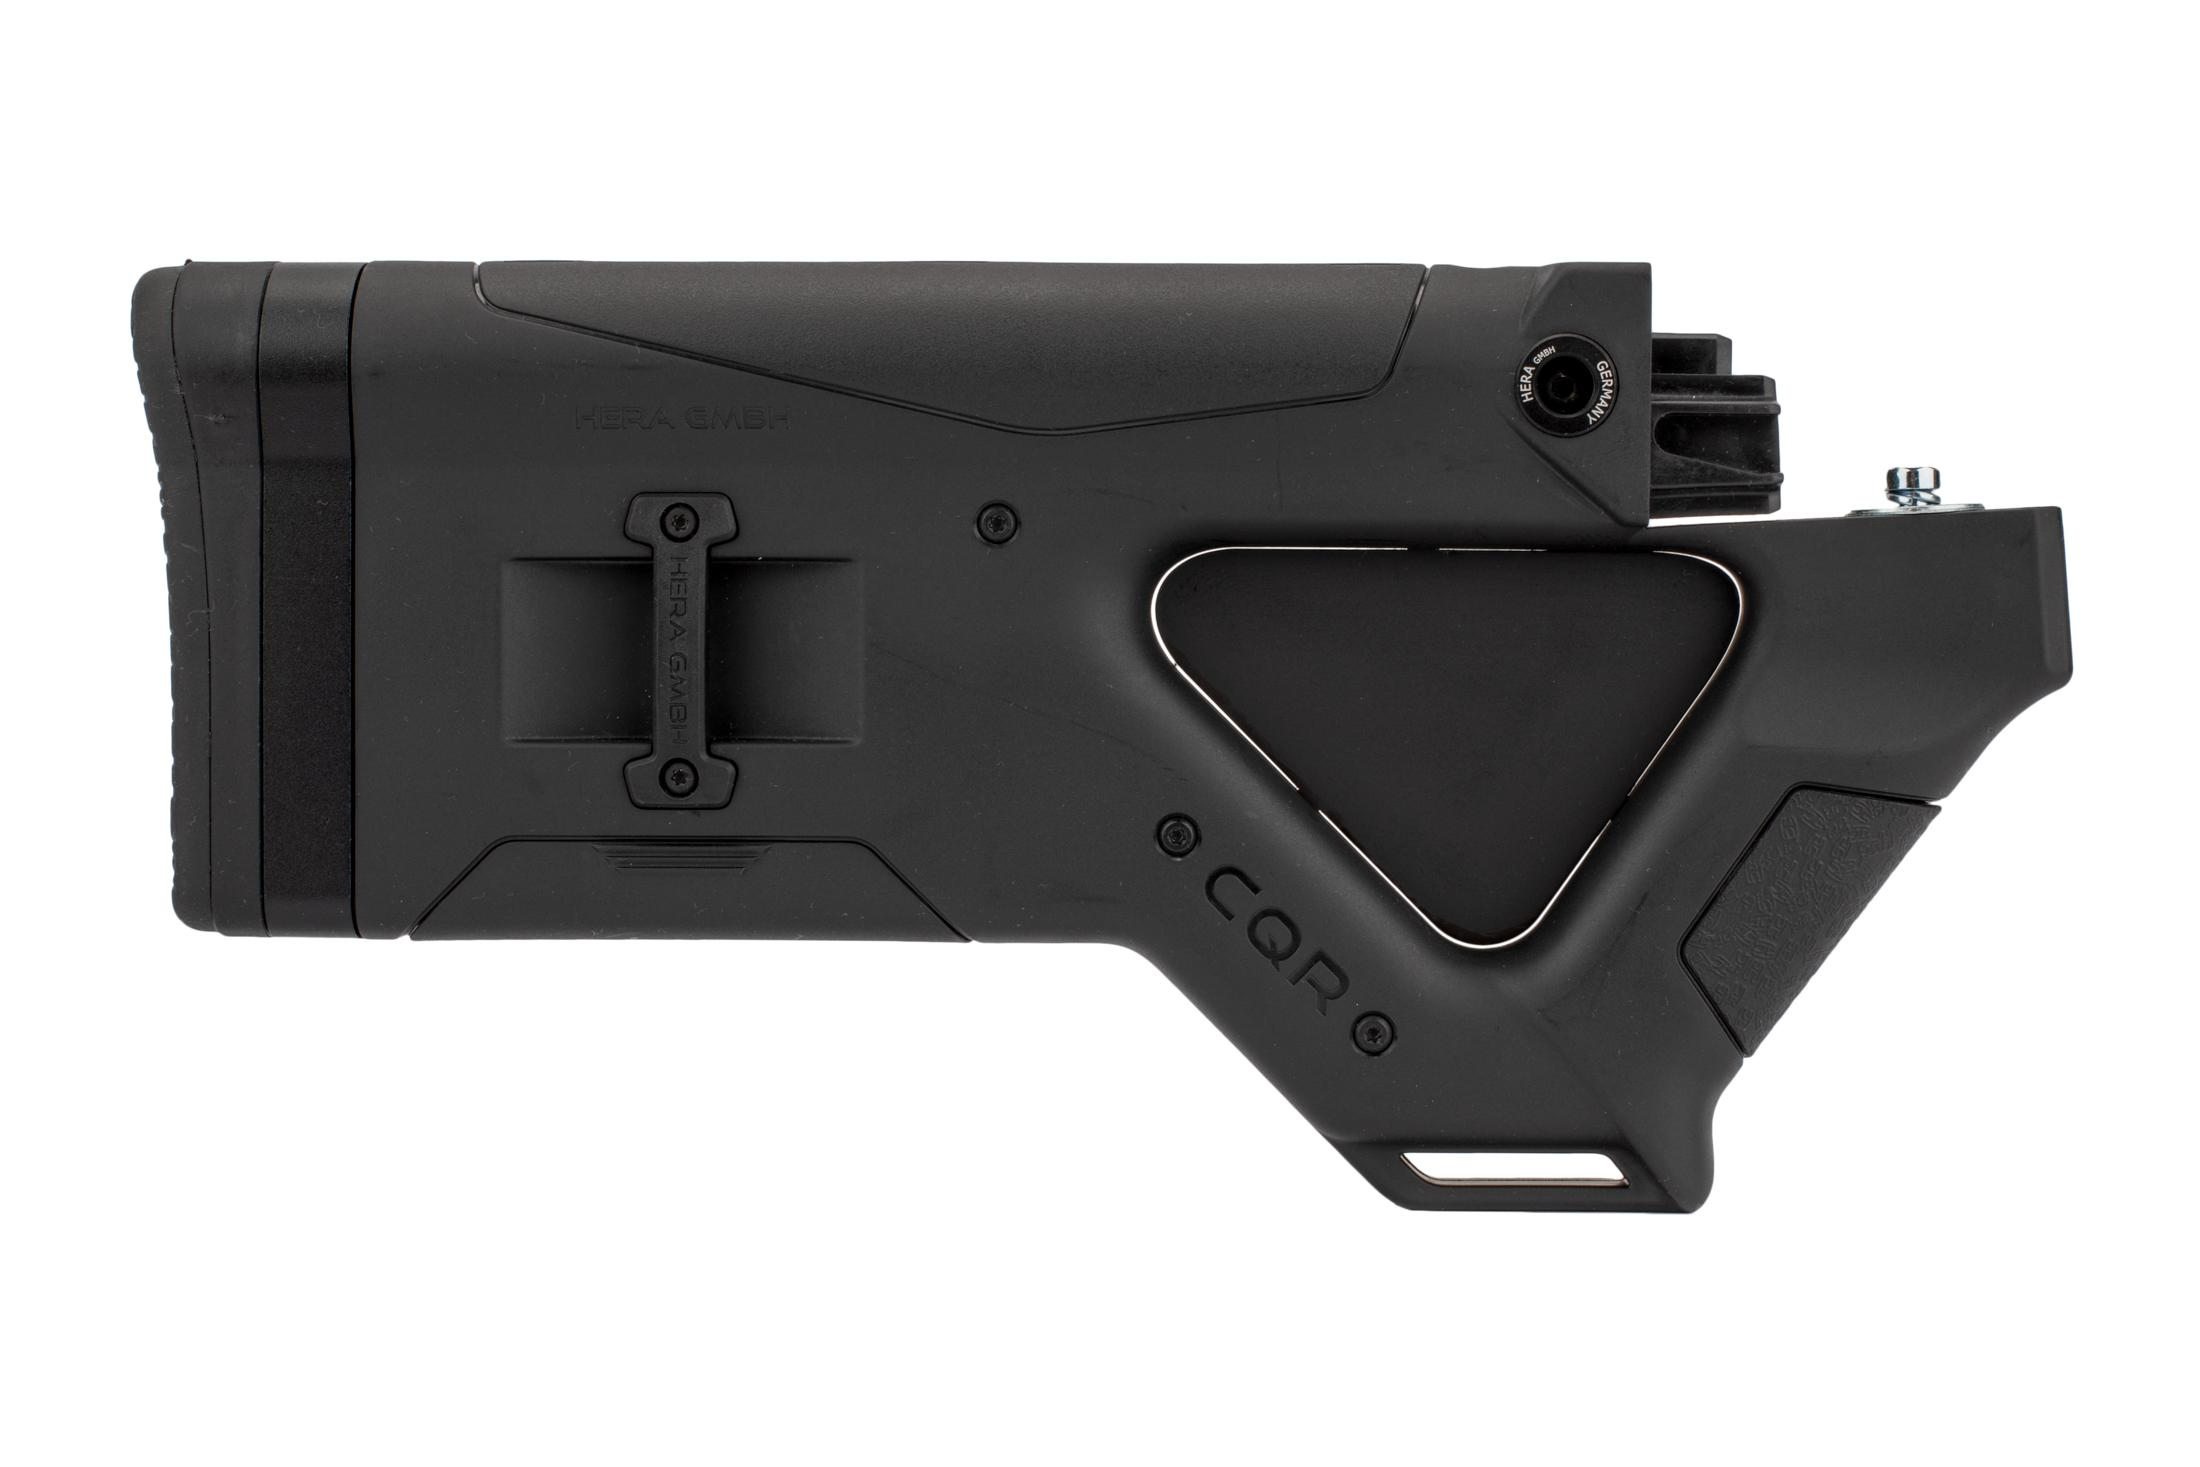 The Hera Arms AK47 CQR featureless stock is made from black polymer with an aluminum insert